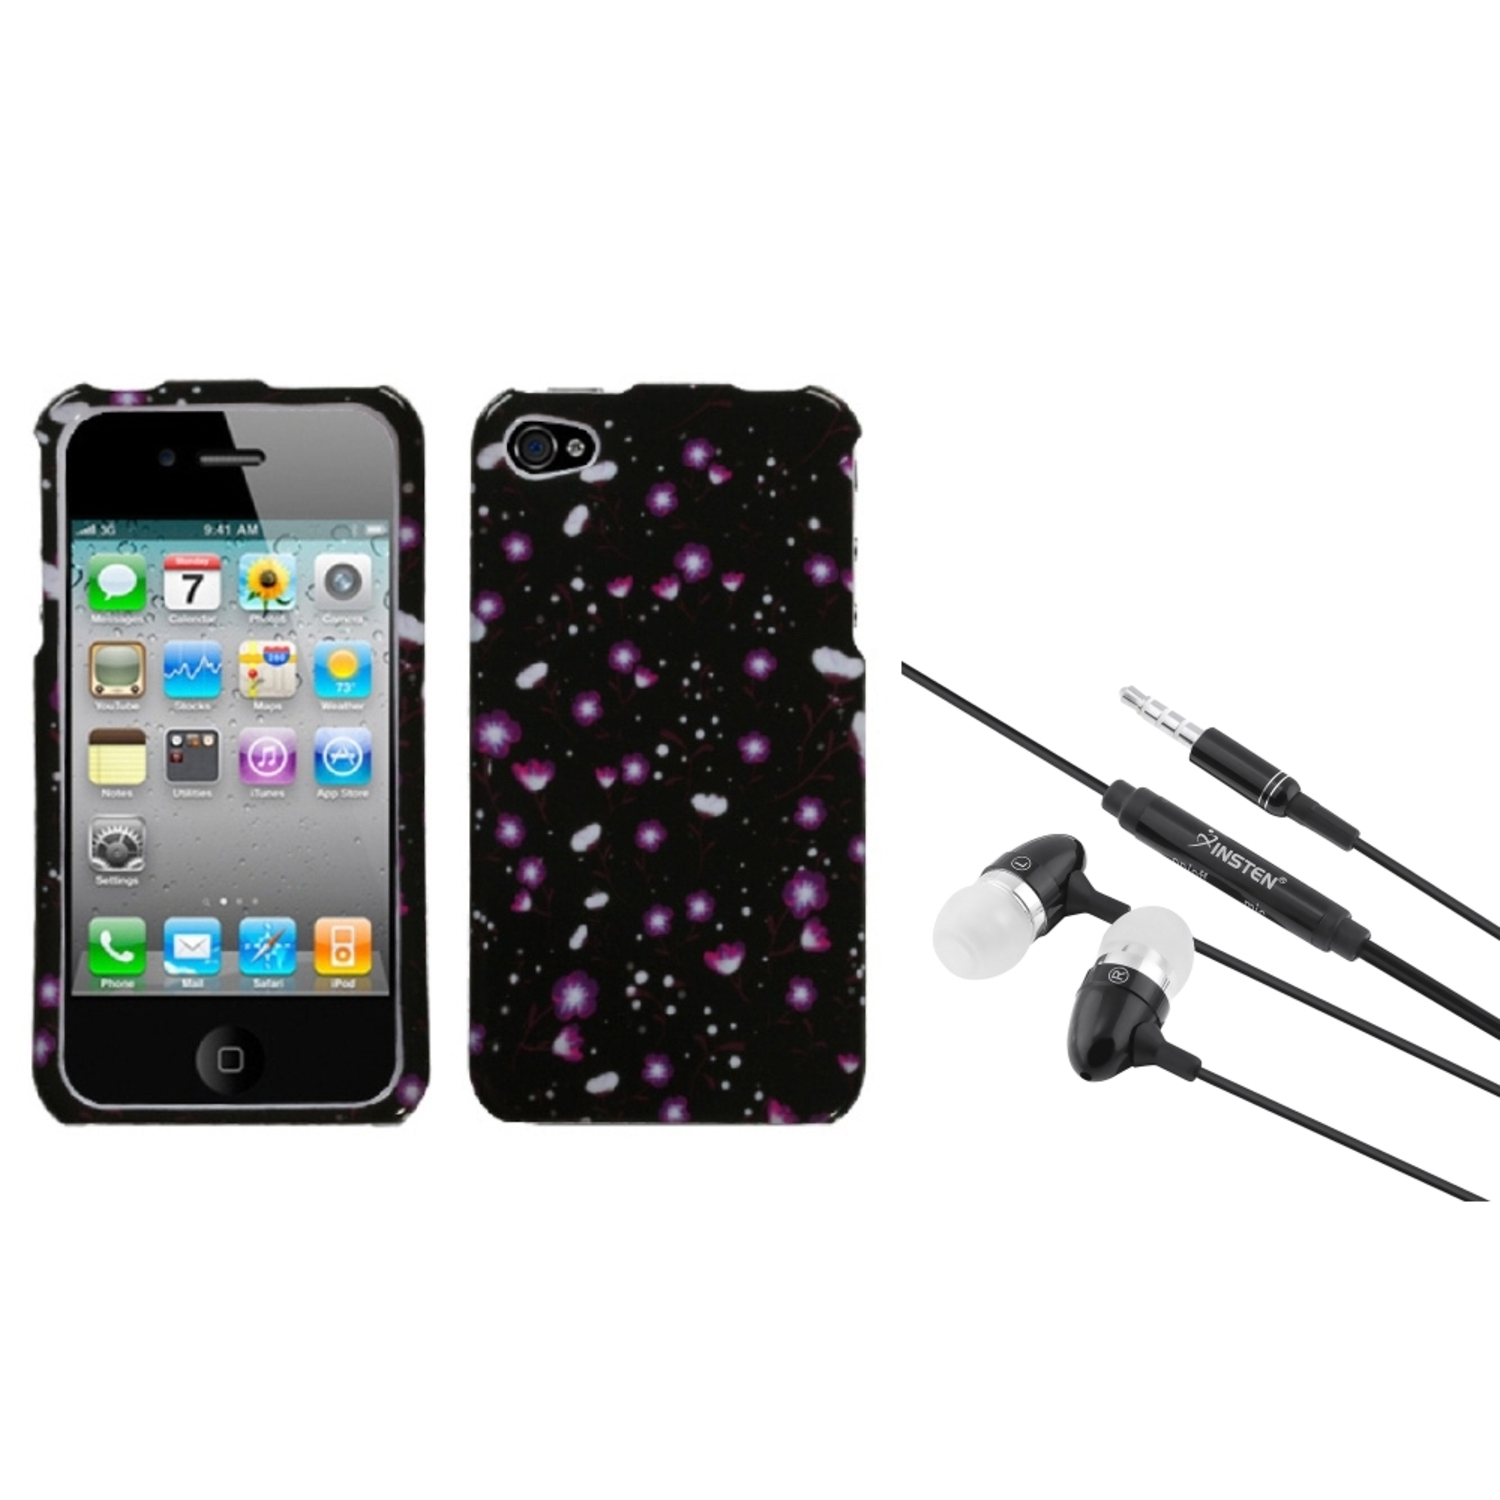 Insten Starburst Flower Black Case For iPhone 4 4S + 3.5mm Handsfree Headset